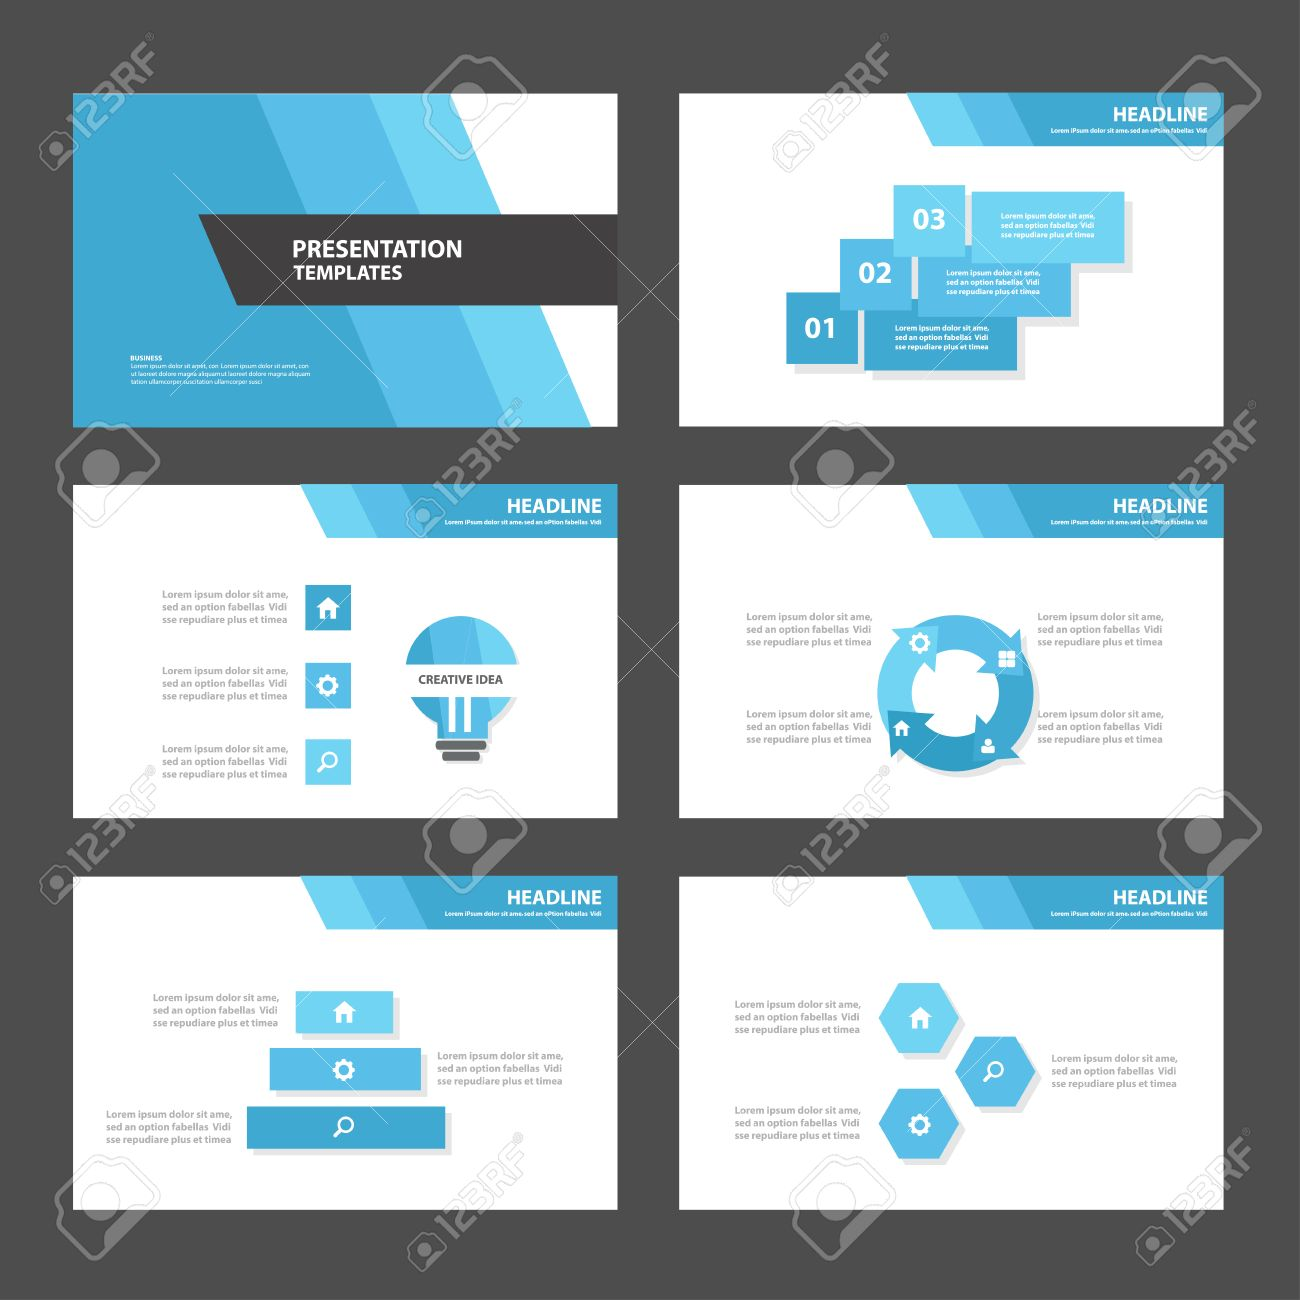 blue polygon multipurpose infographic elements and icon blue polygon 3 multipurpose infographic elements and icon presentation template flat design set for advertising marketing